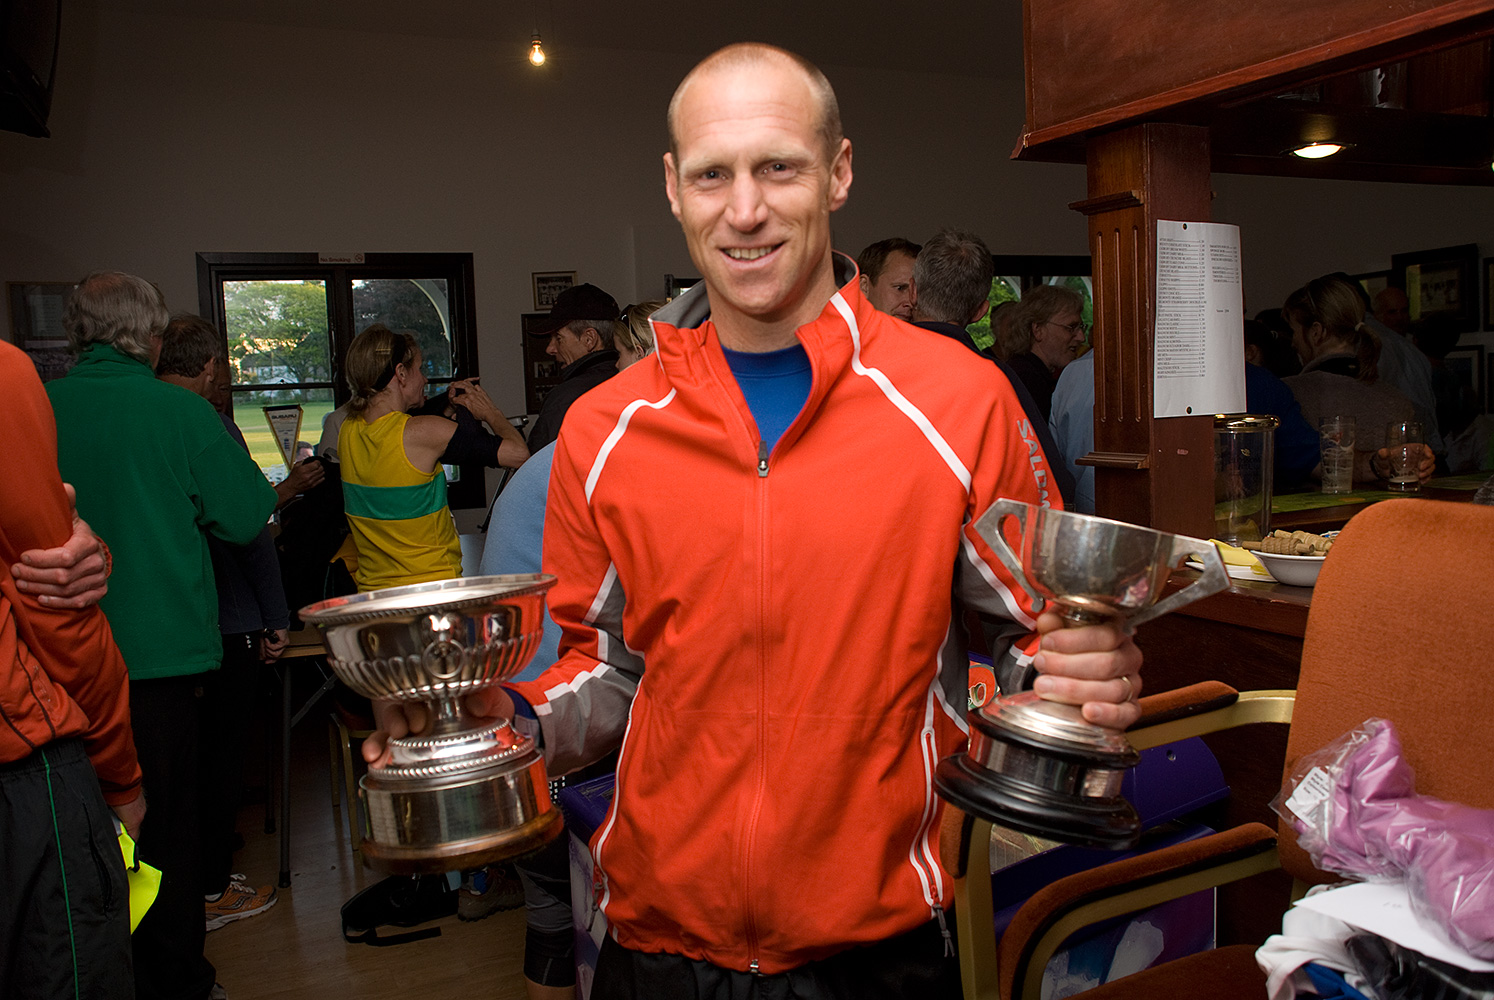 Receiving his trophiesafter winning the Latrigg Fell Race at the Keswick Mountain Festival in 2008. Simon won the British Fell Running Championship in 2002 & 2005 and came 2nd in the World Skyrunning Series in 2005.